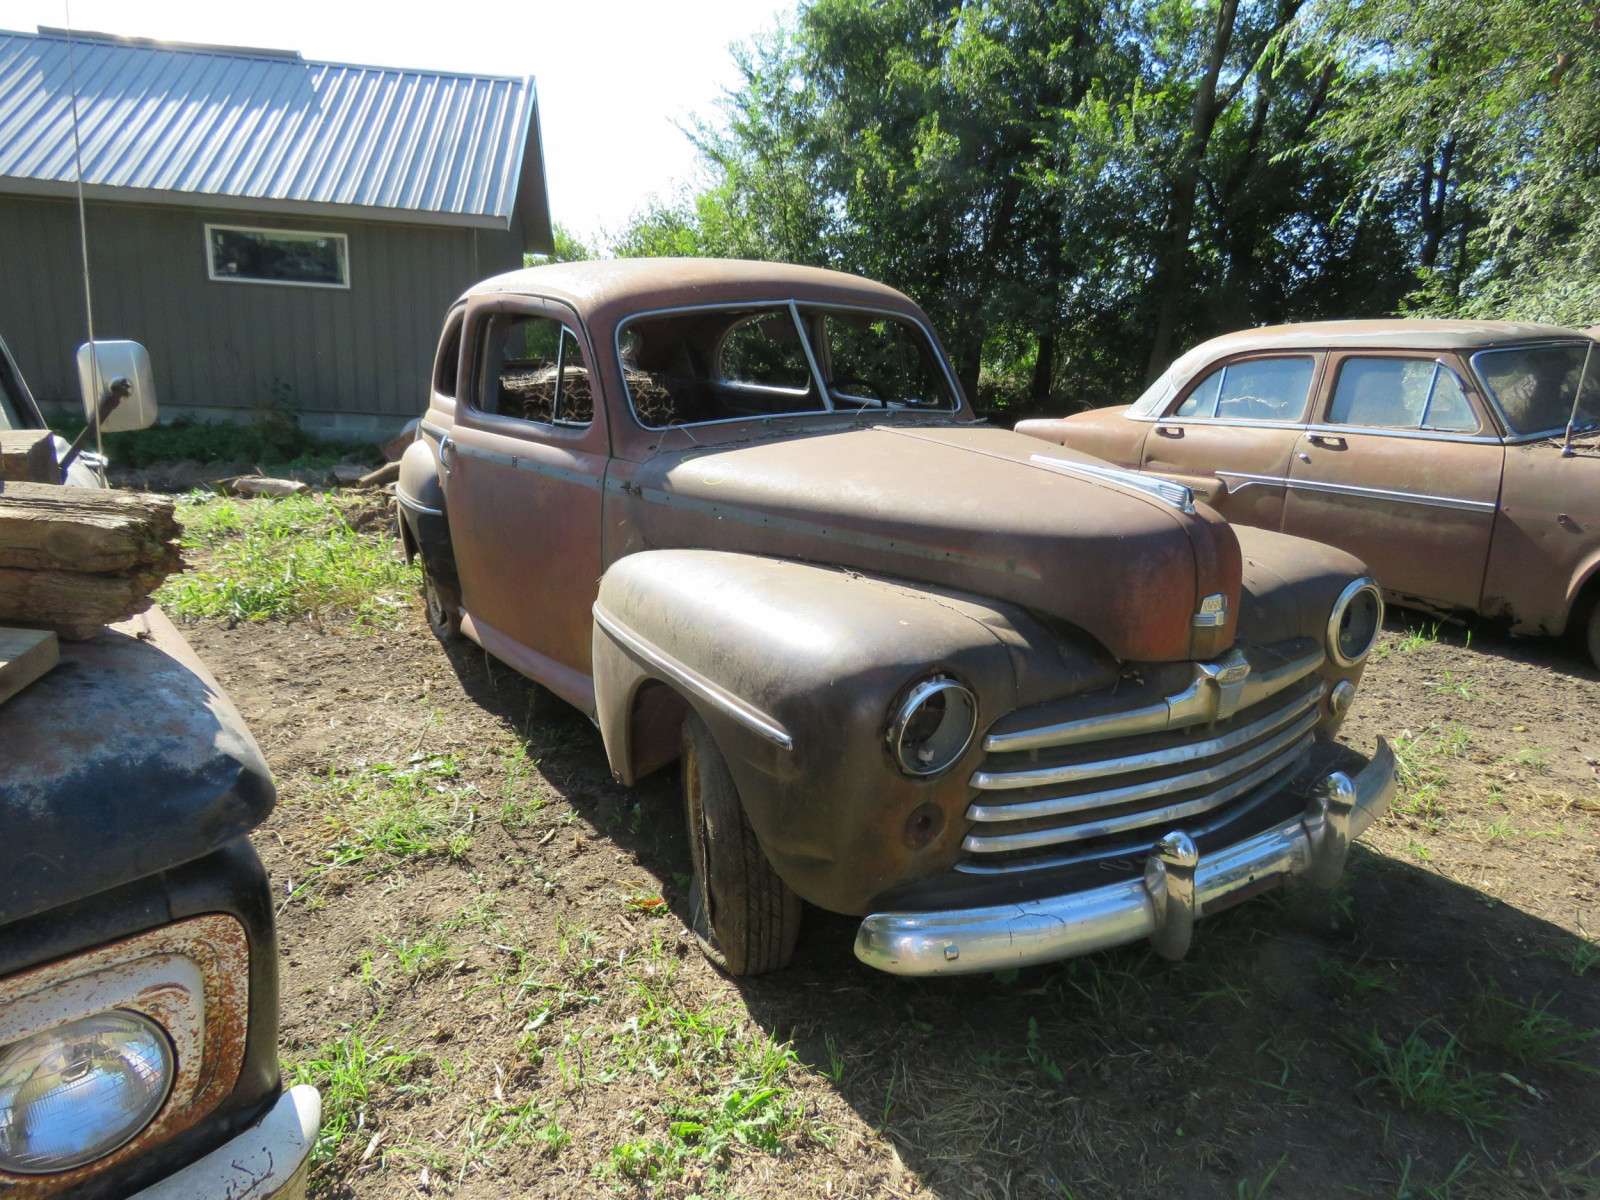 1947 Ford 2dr Sedan for Project or Parts - Image 1